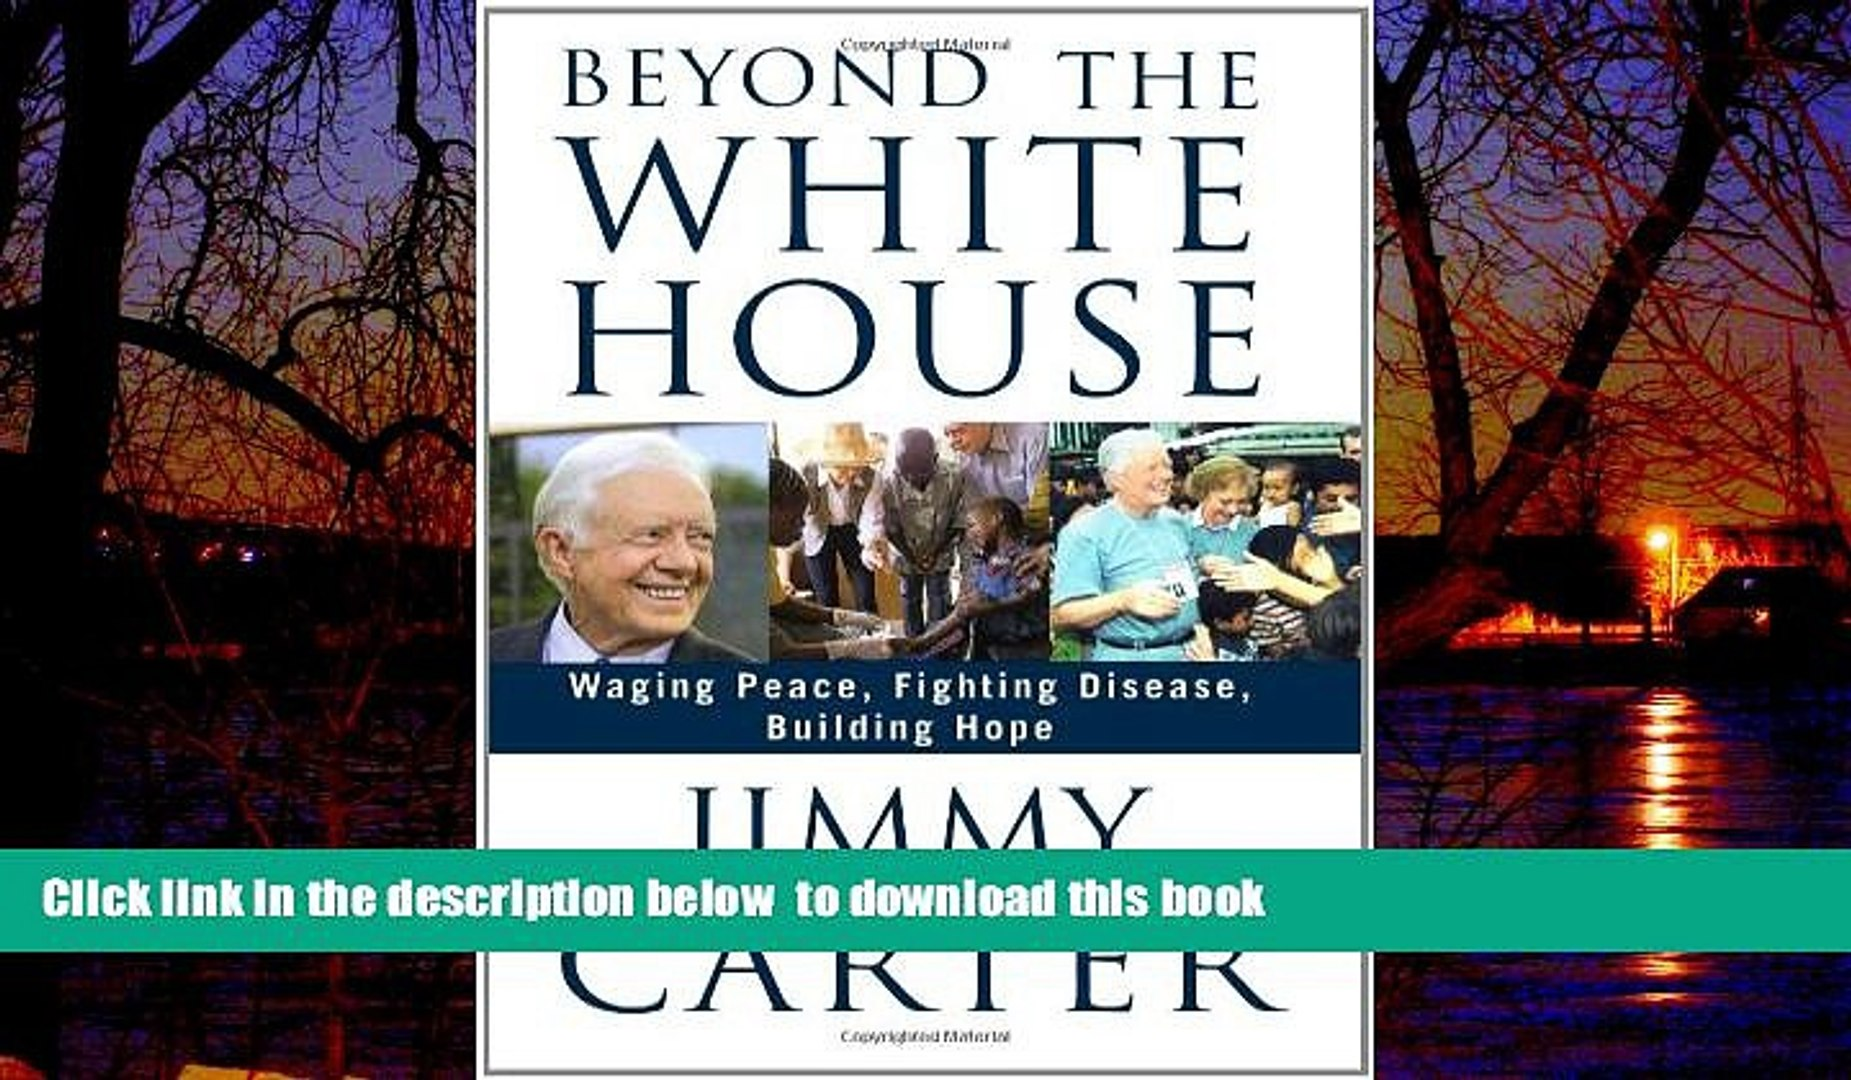 Buy NOW Jimmy Carter Beyond the White House: Waging Peace, Fighting Disease, Building Hope Epub